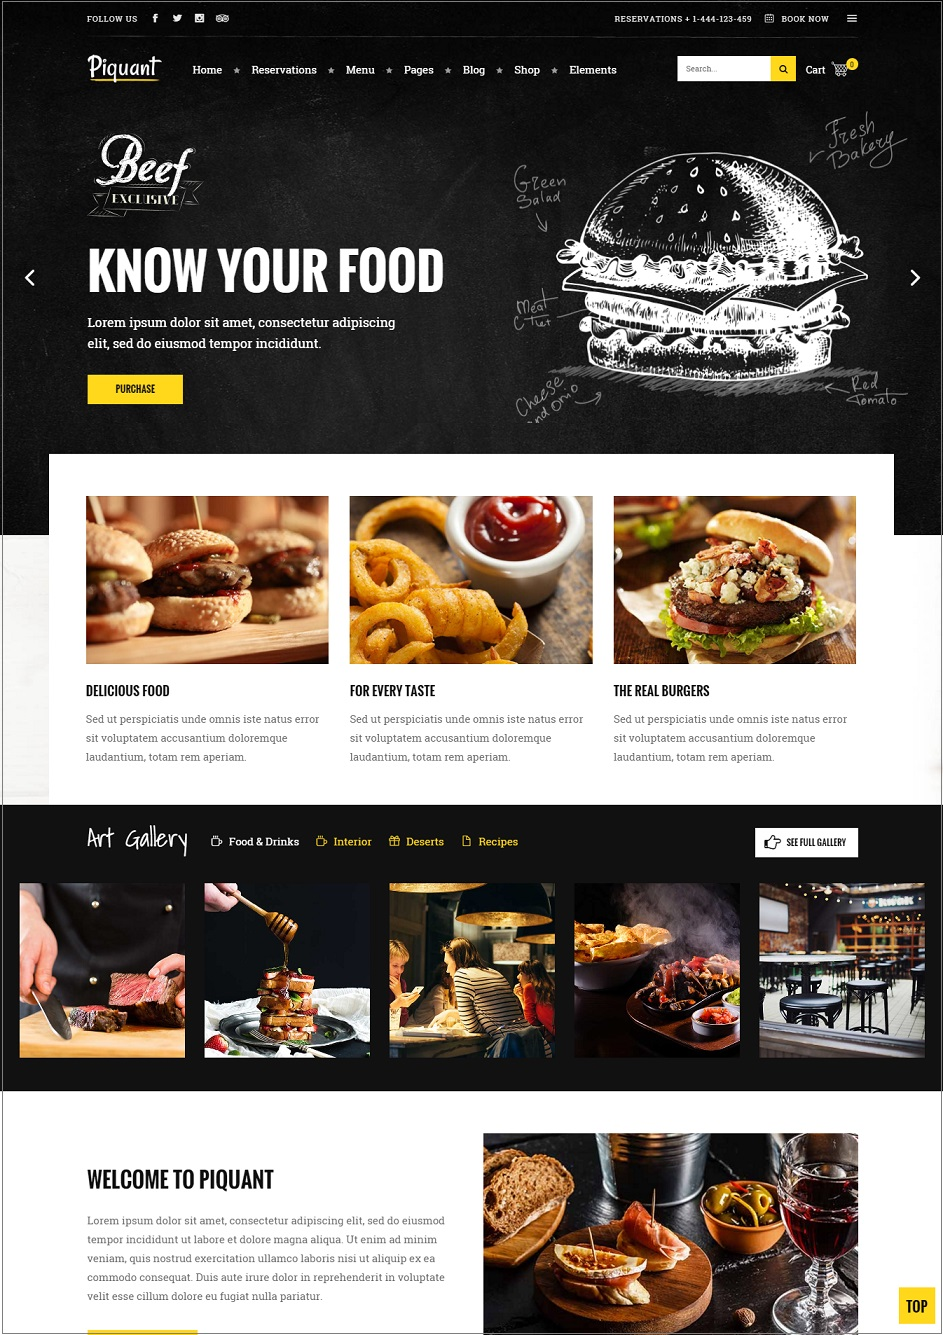 Piquant restuarant wordpress theme